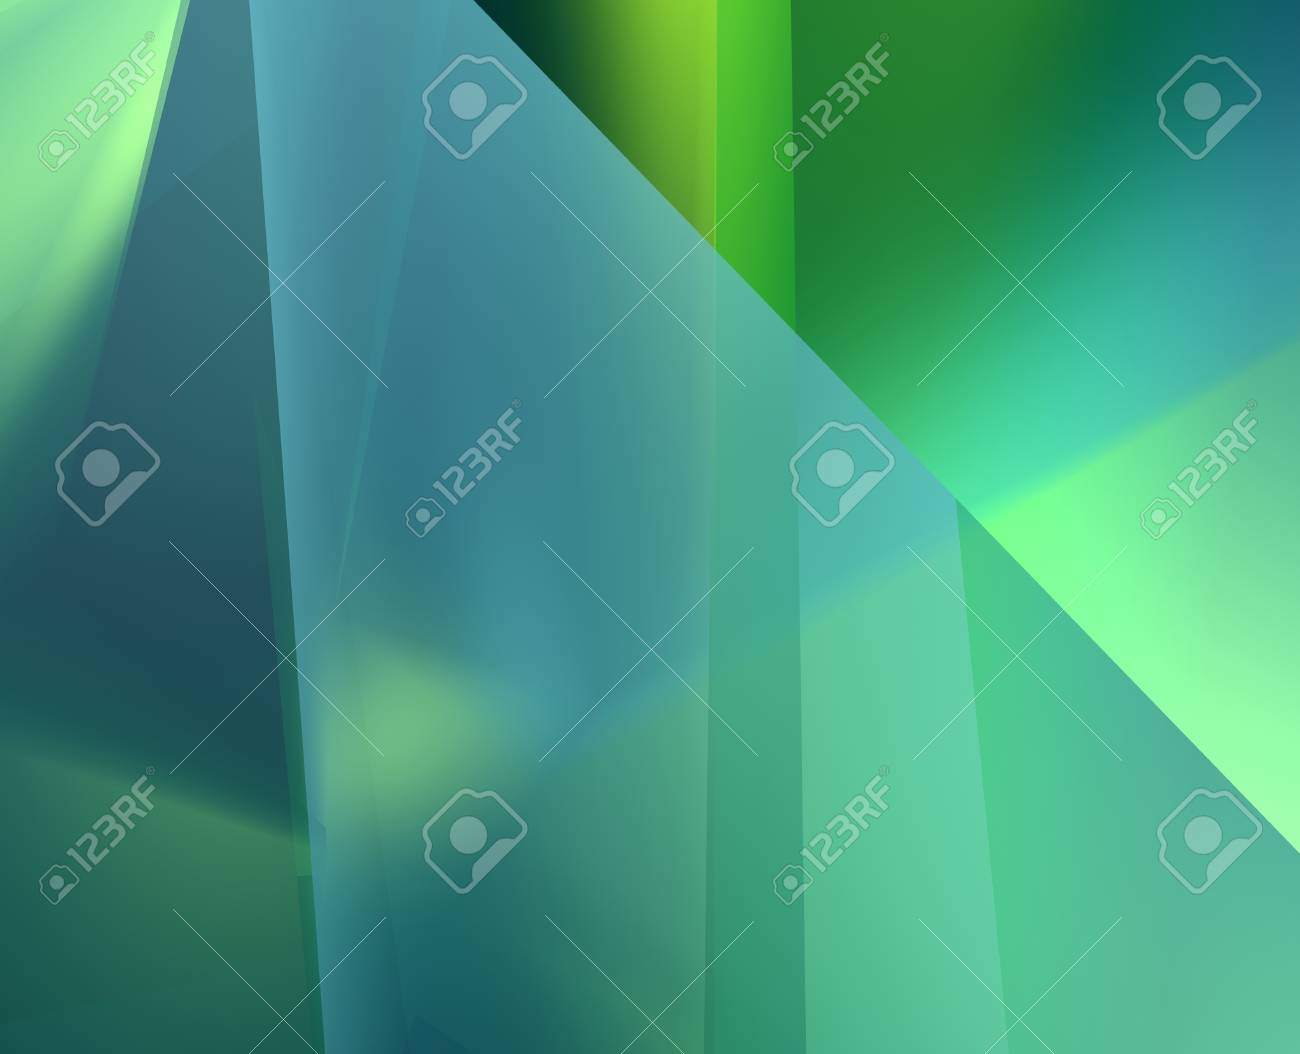 Abstract Background Stock Photo - 12858679